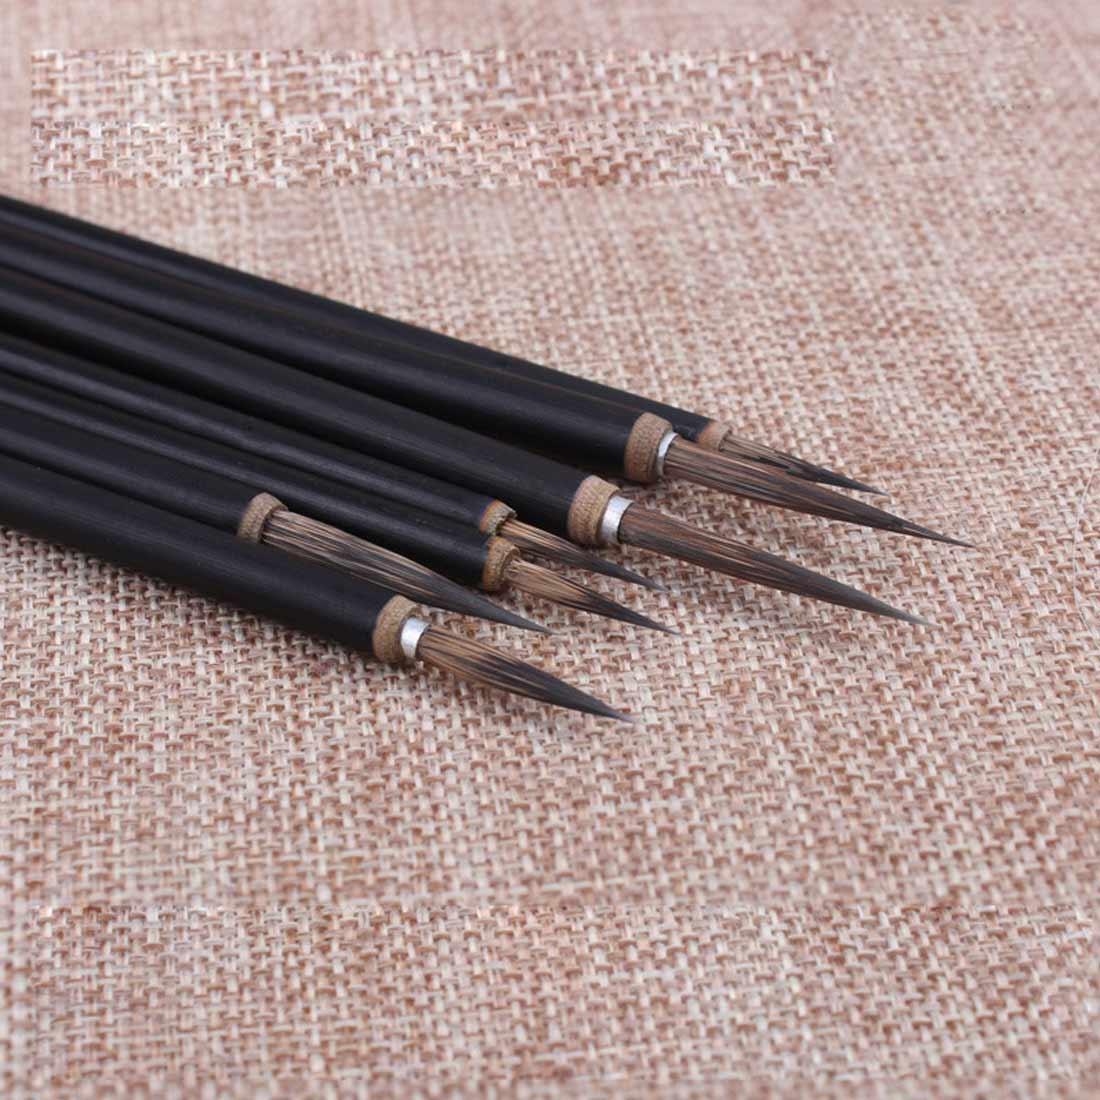 3pcs Wolf Hair Brush Hook Line Pen Calligraphy Pens Black Bamboo Penholder Artist Drawing Painting Watercolor Painting Supplies